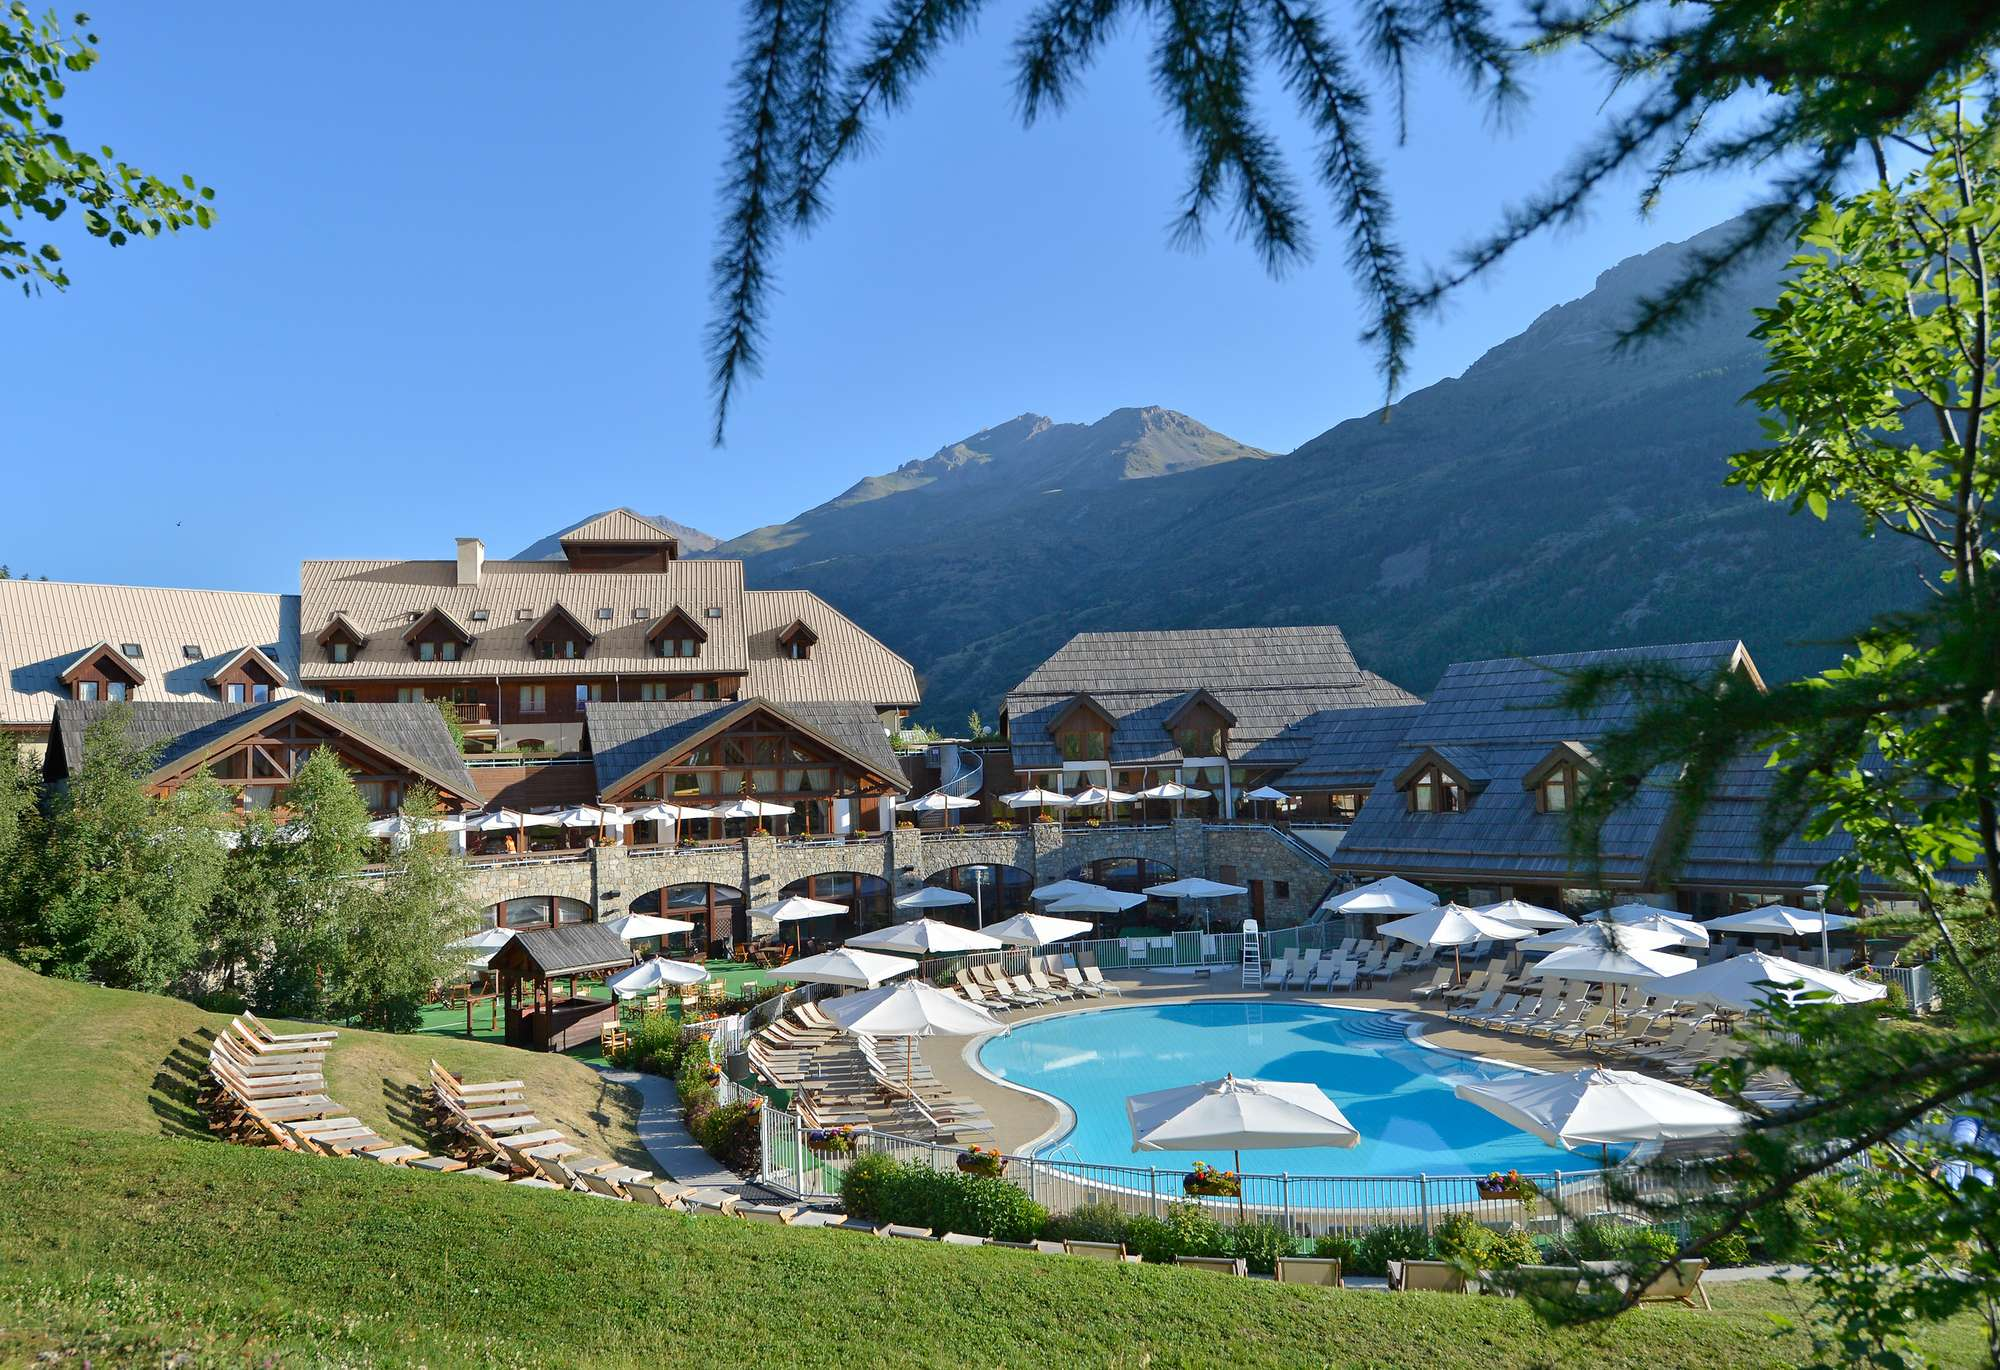 https___ns.clubmed.com_dream_RESORTS_3T___4T_Alpes_Serre_Chevalier_84565-8cng2f4onk-swhr